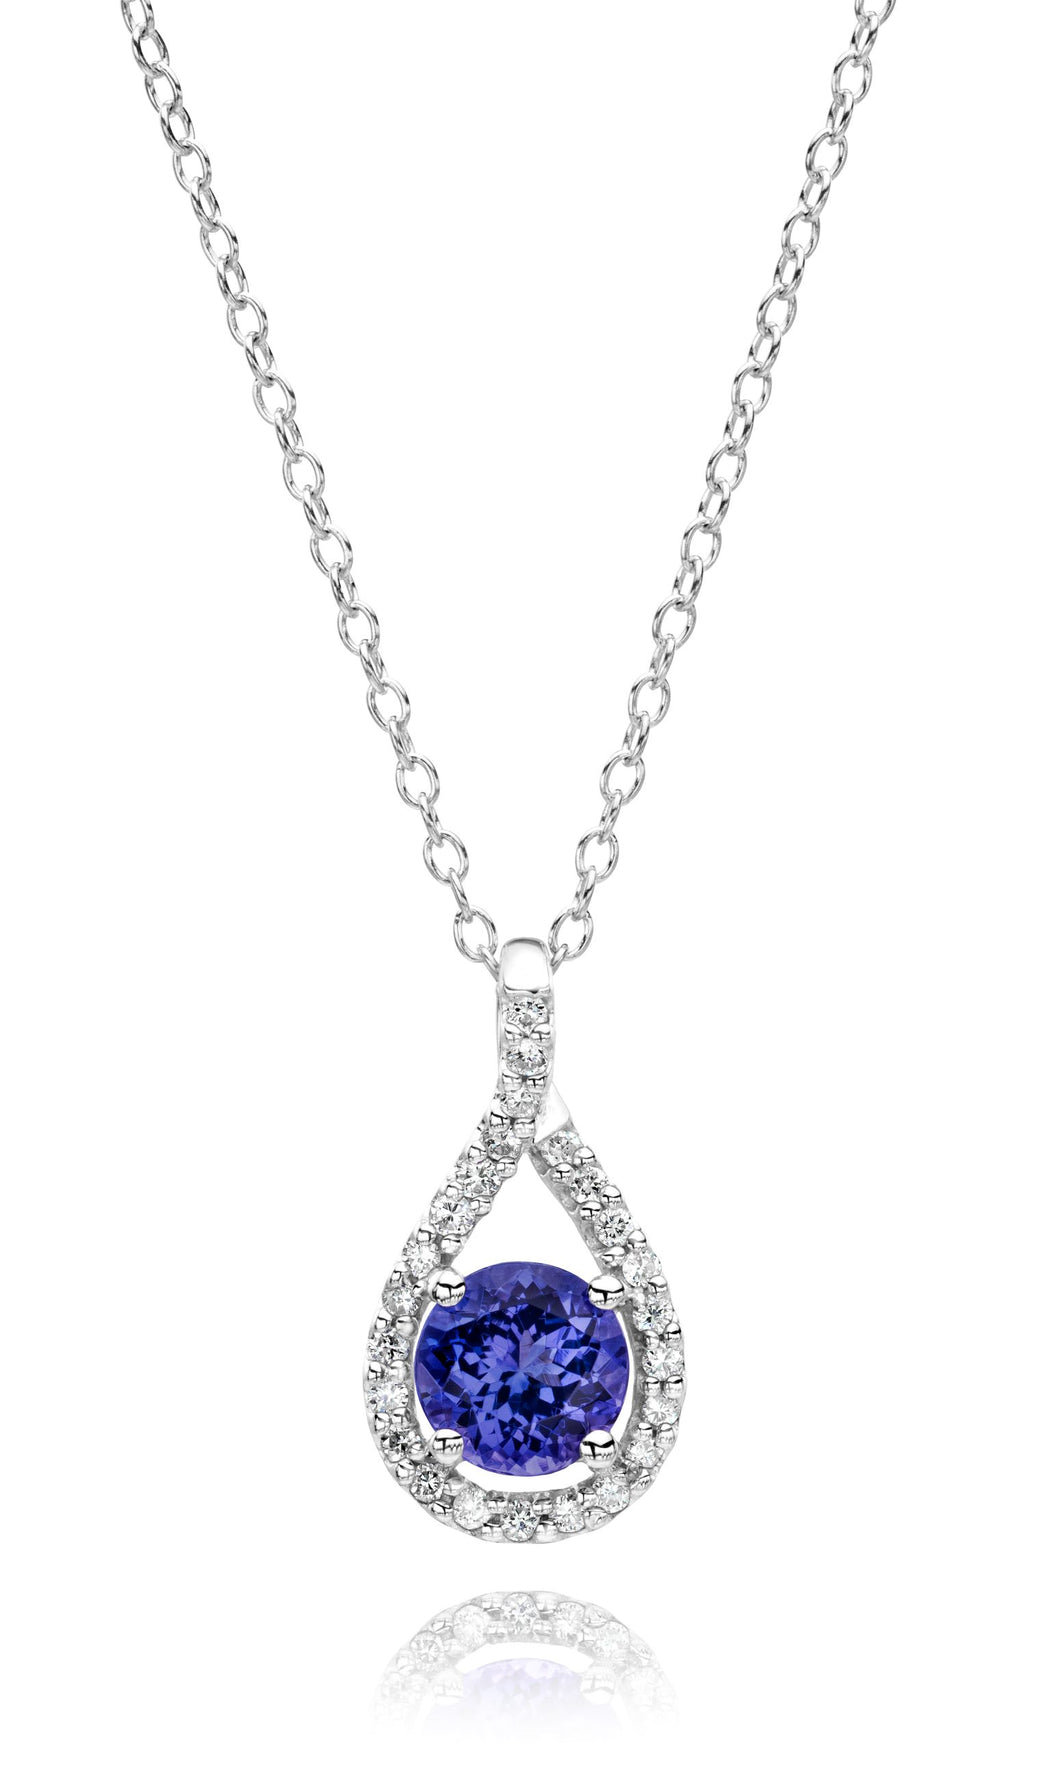 Diamond Pendant with Round Shaped Tanzanite set in 14k White Gold (chain sold separately)